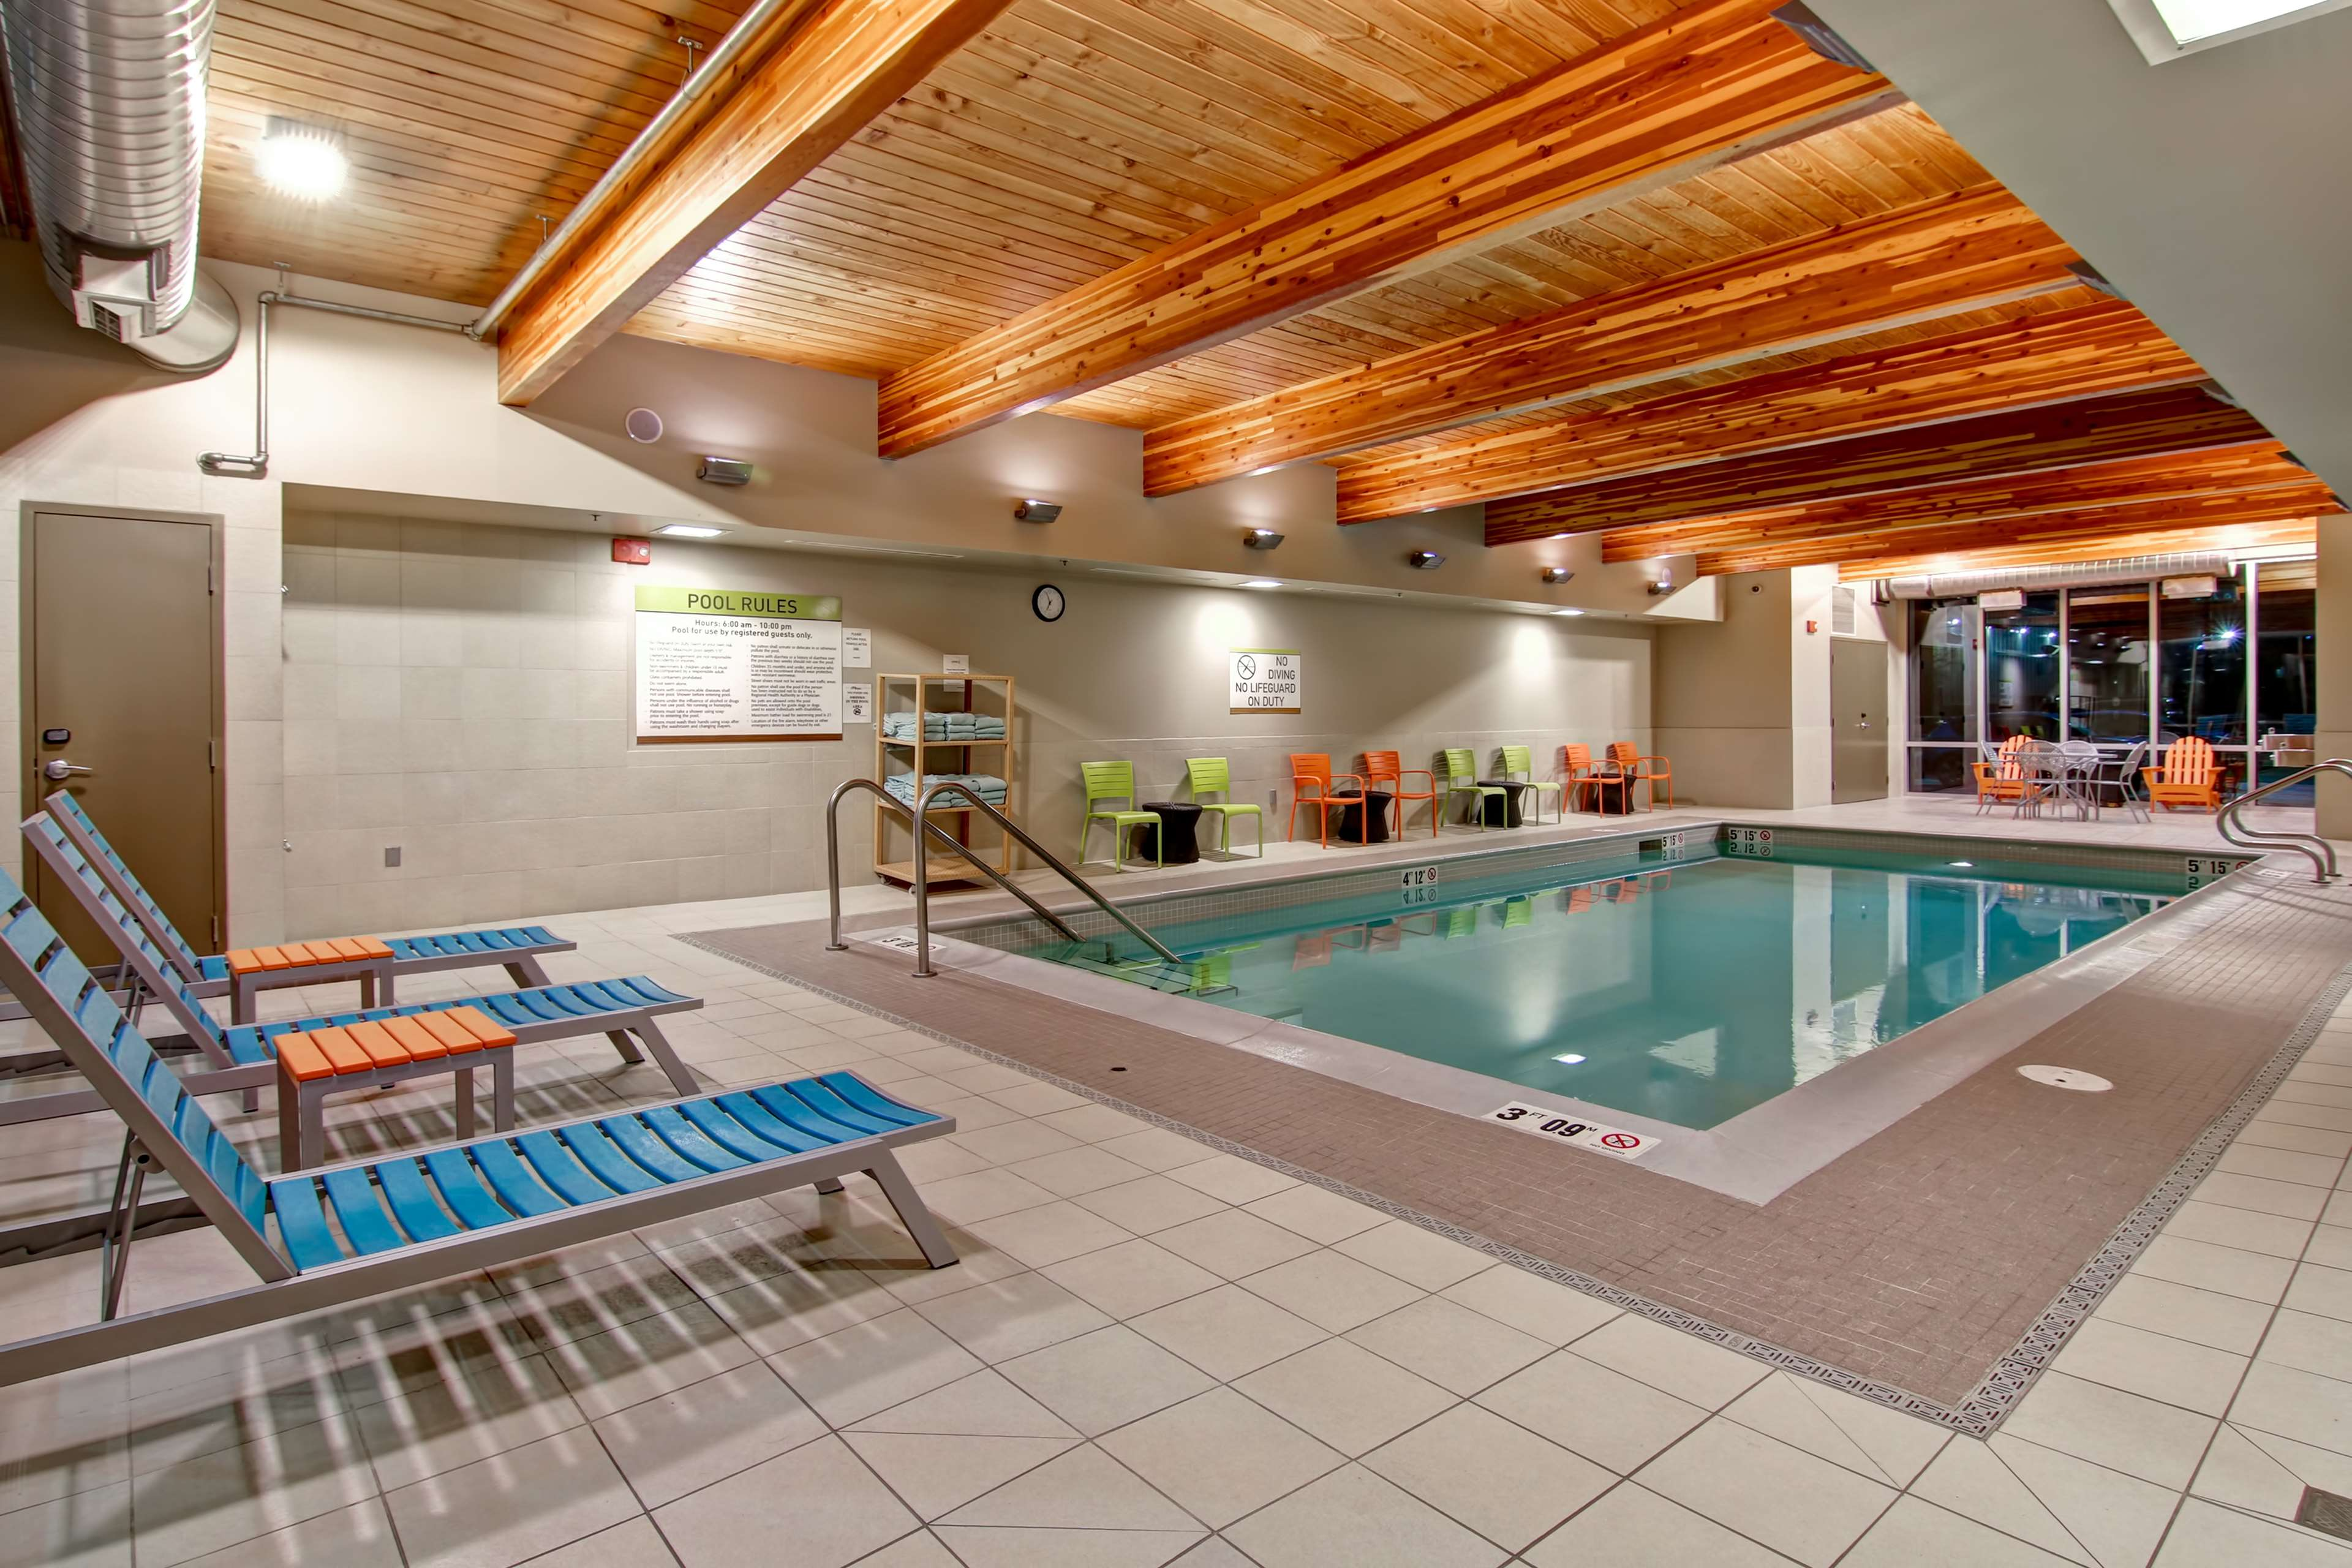 Home2 Suites by Hilton West Edmonton, Alberta, Canada à Edmonton: Pool